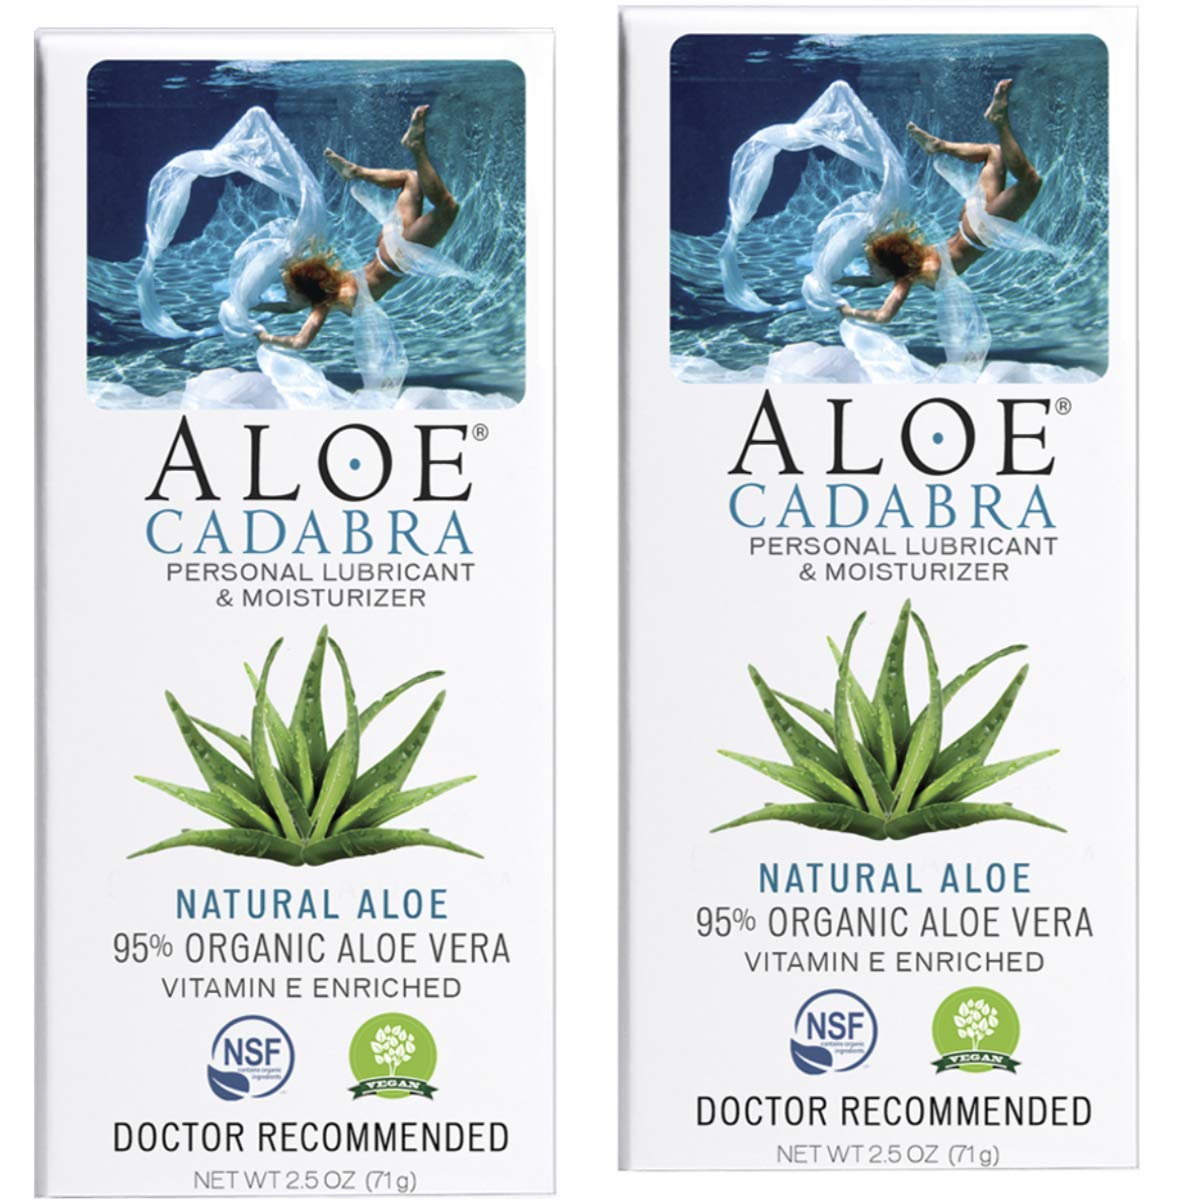 Aloe Cadabra Organic Personal Lubricant & Moisturizer, Natural Sex Lube Oral Gel for Her, Him & Couples, Unscented, 2.5 oz (Pack of 2) by Aloe Cadabra